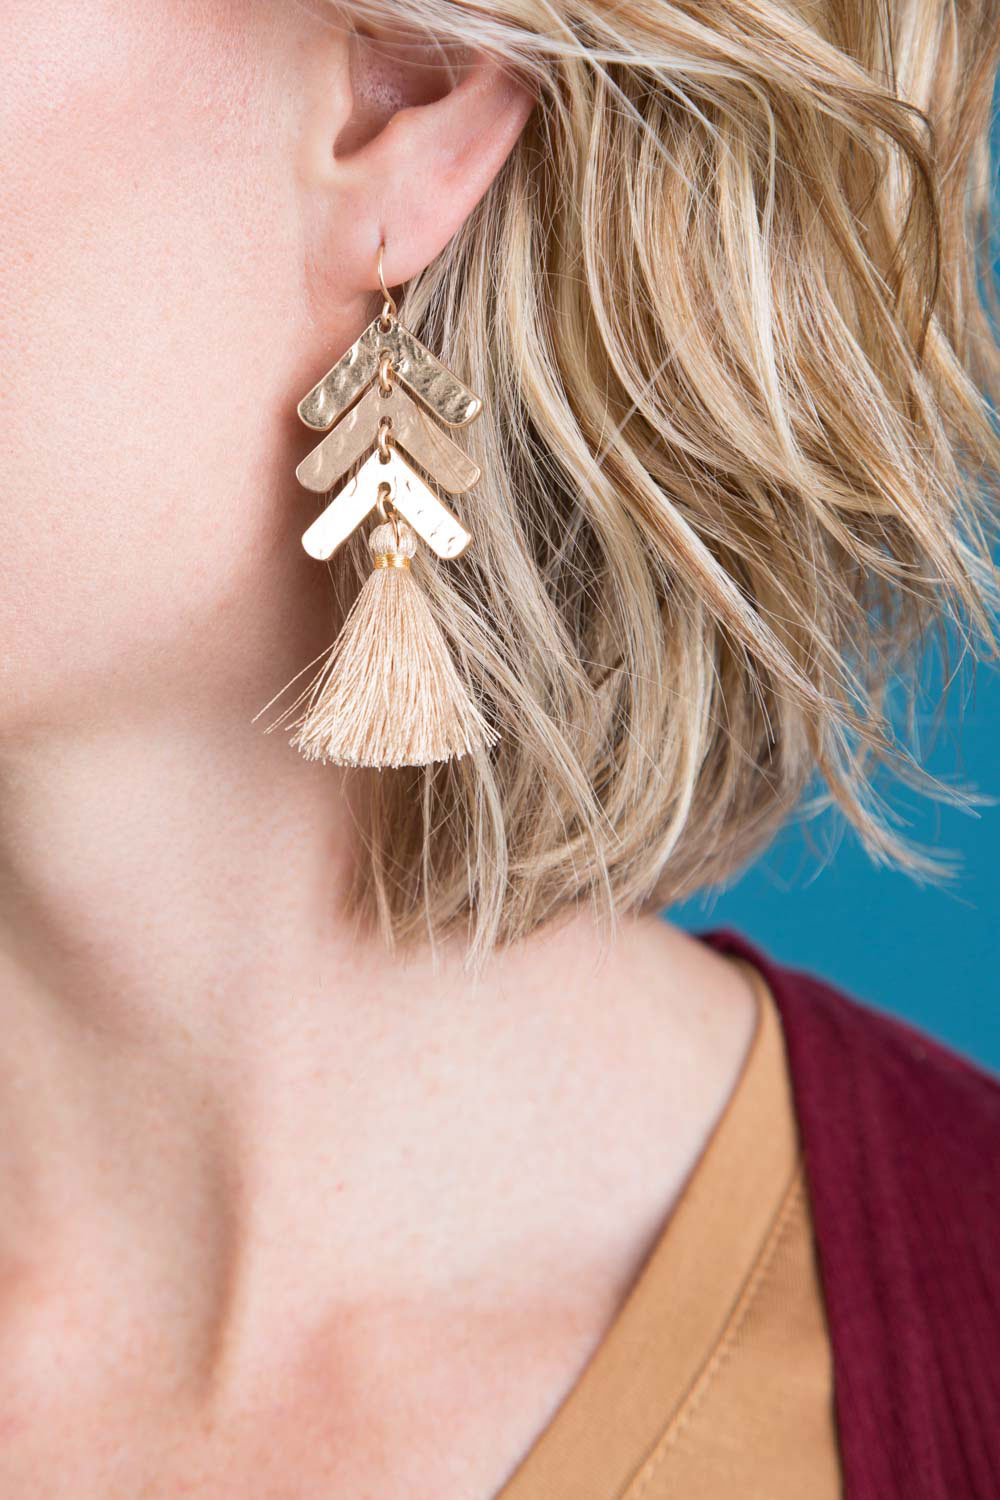 Type 3 This Way Earrings